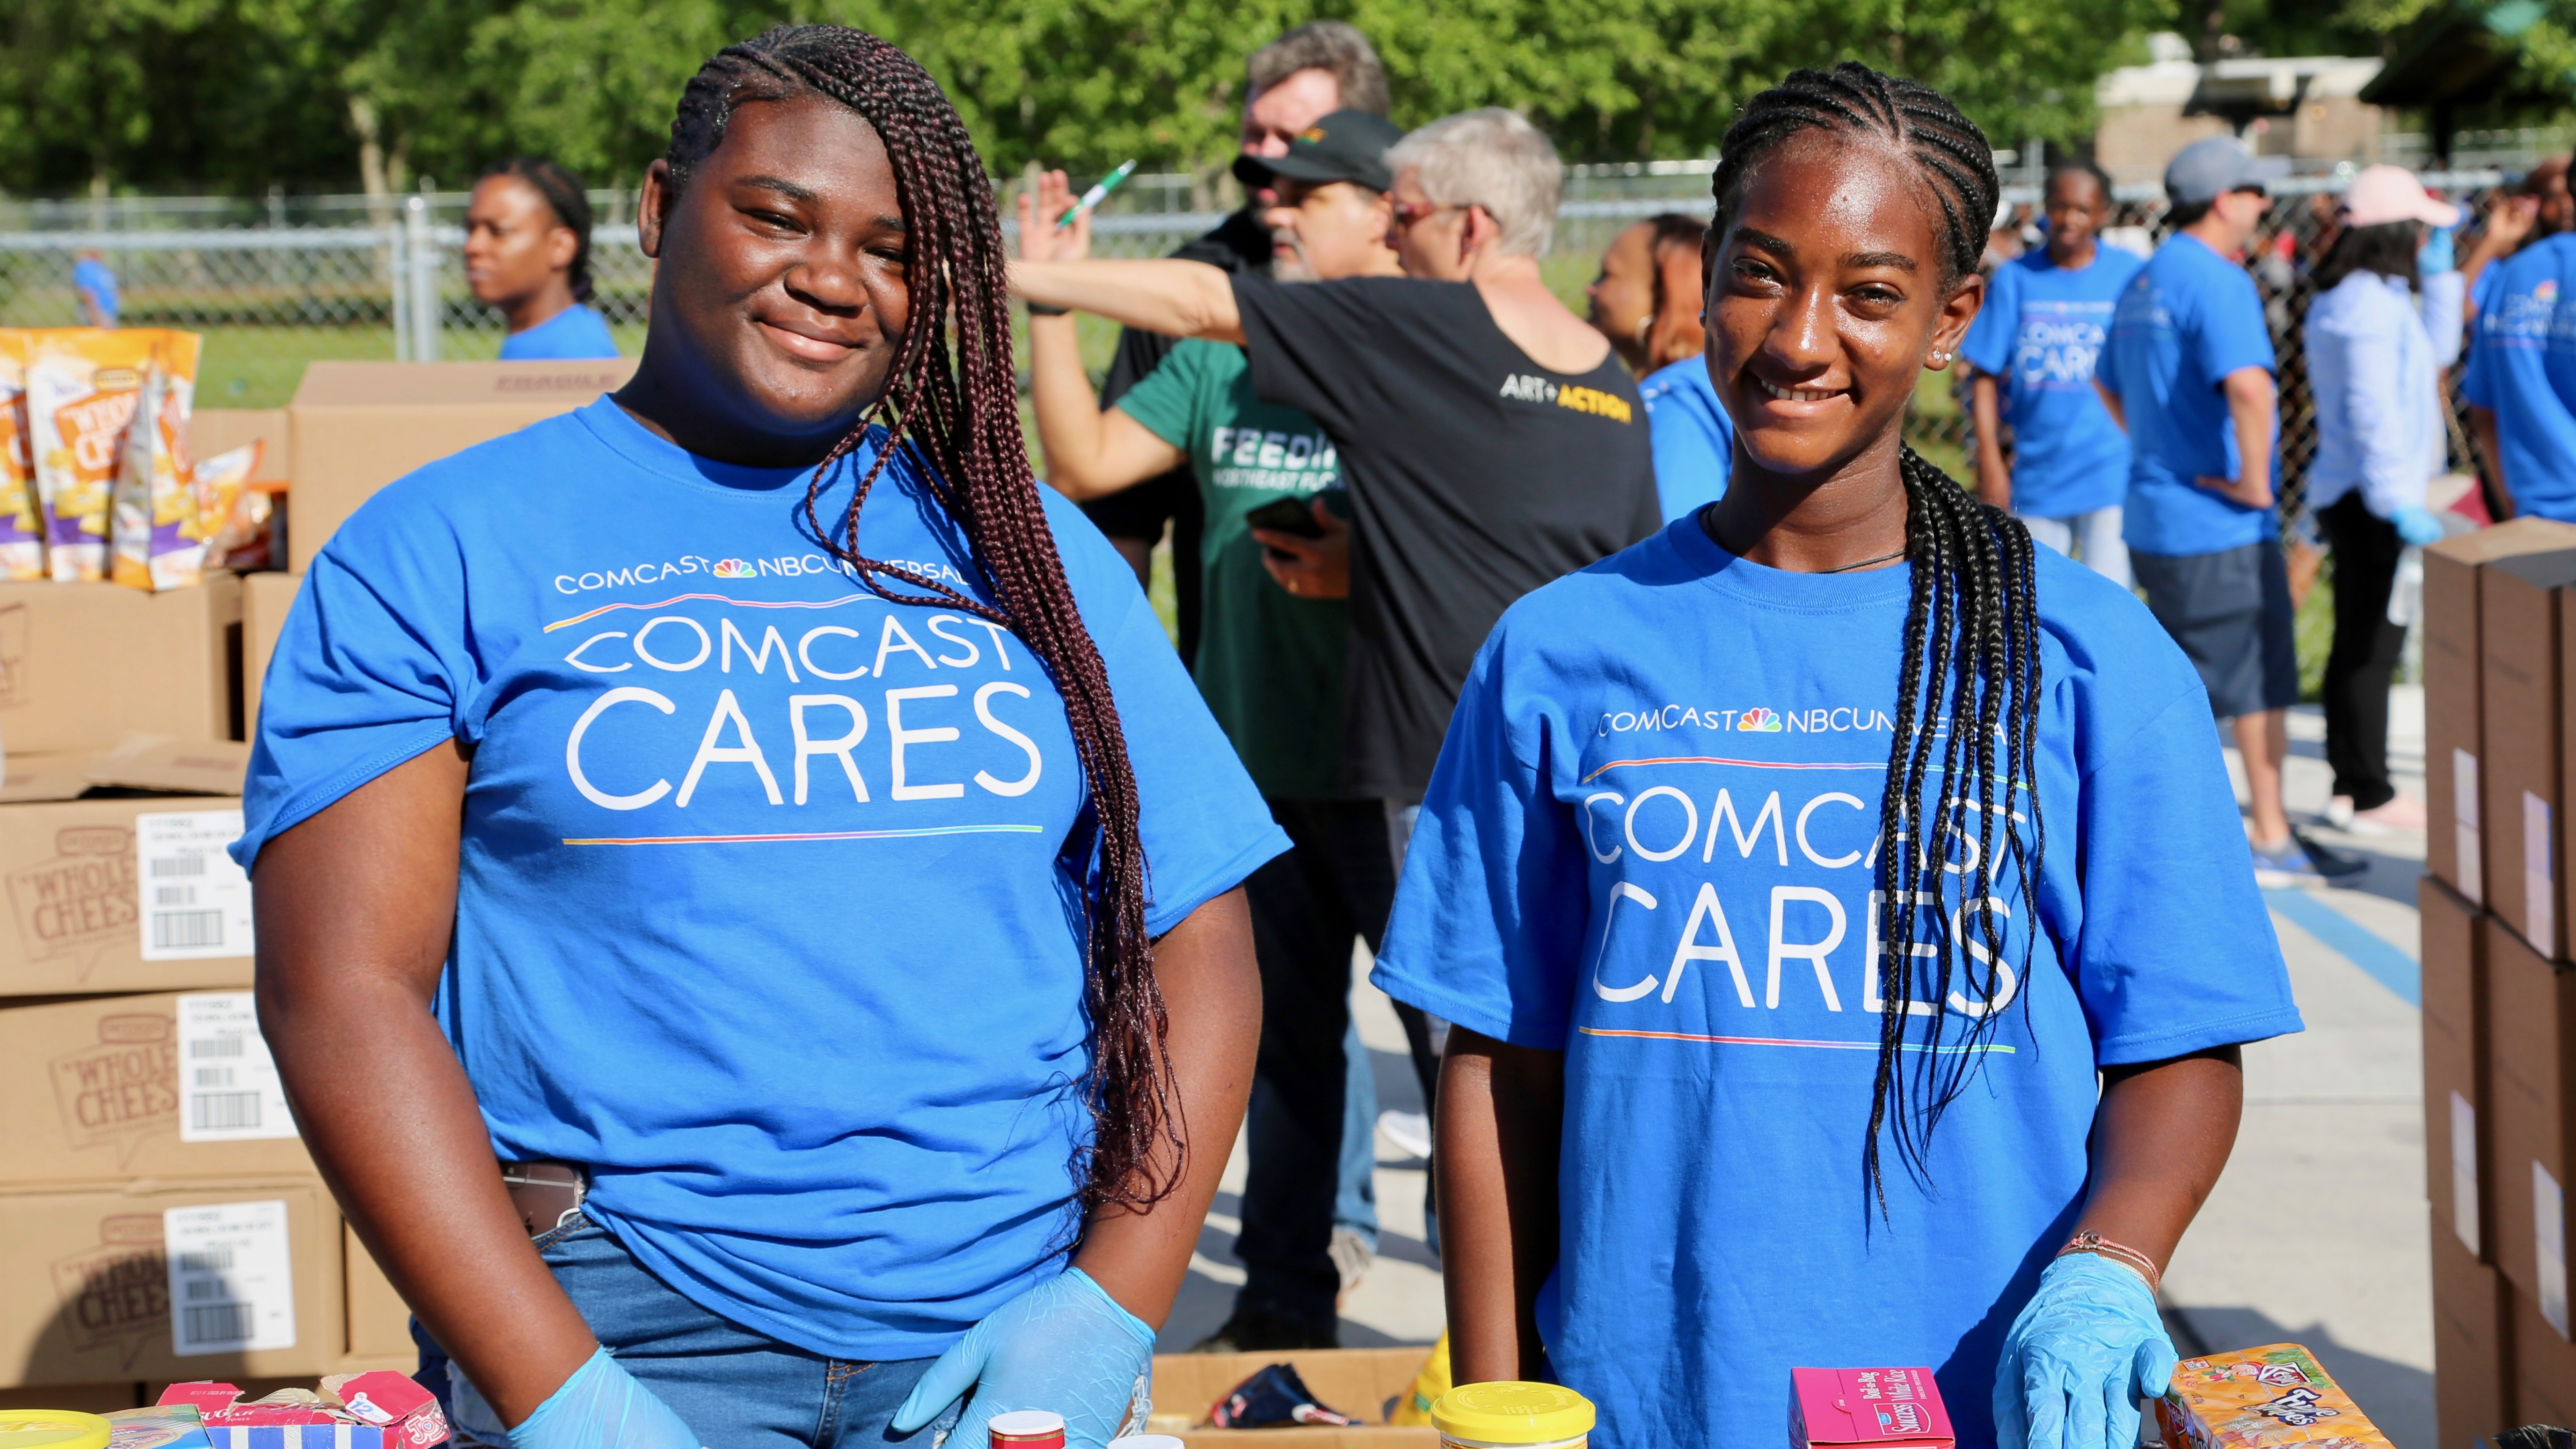 Comcast Cares Day volunteers prepare boxes of food for people in need.